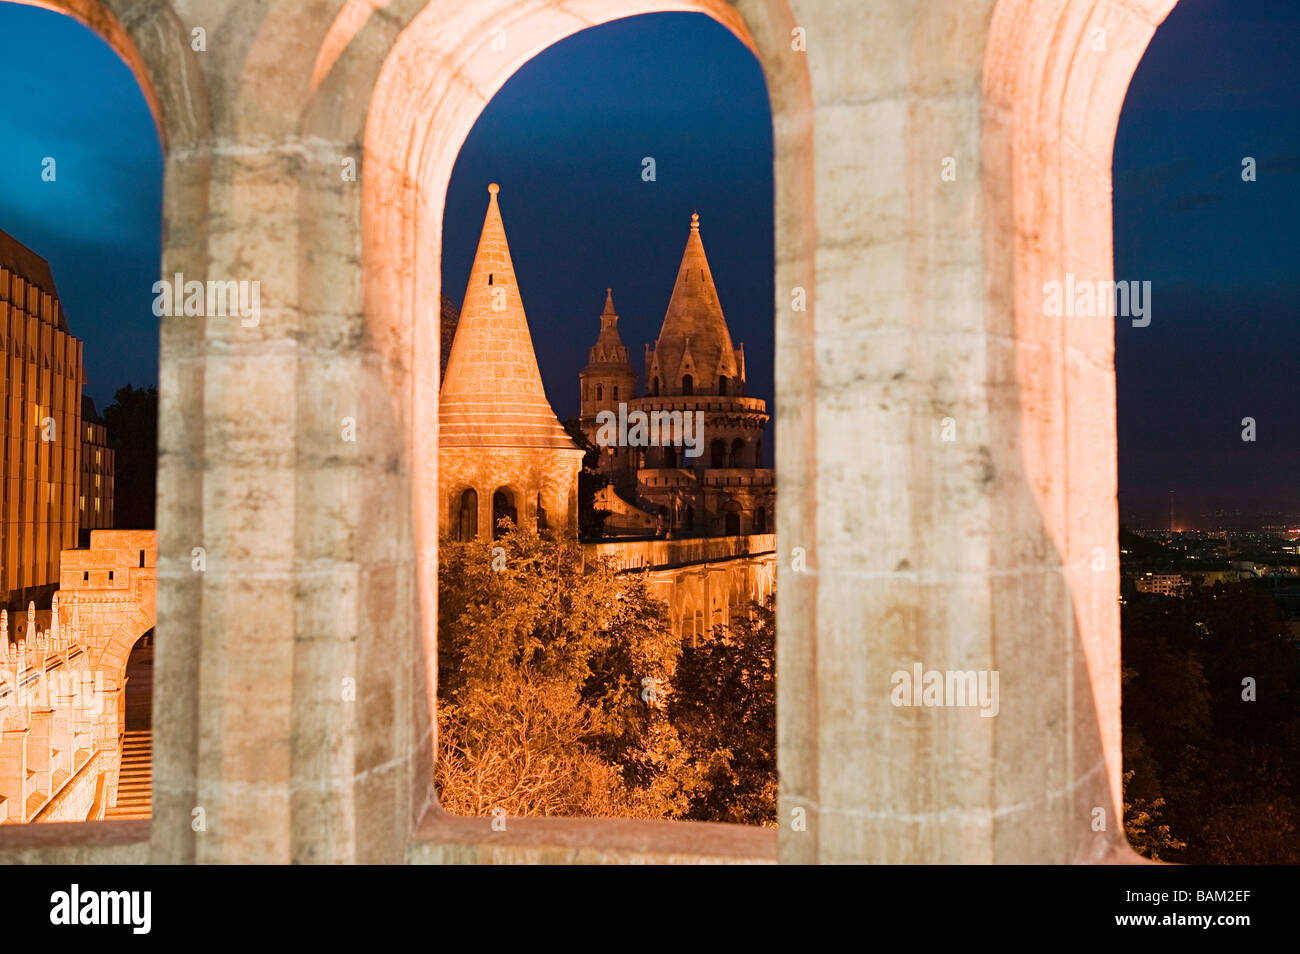 Fisherman's bastion budapest - Stock Image